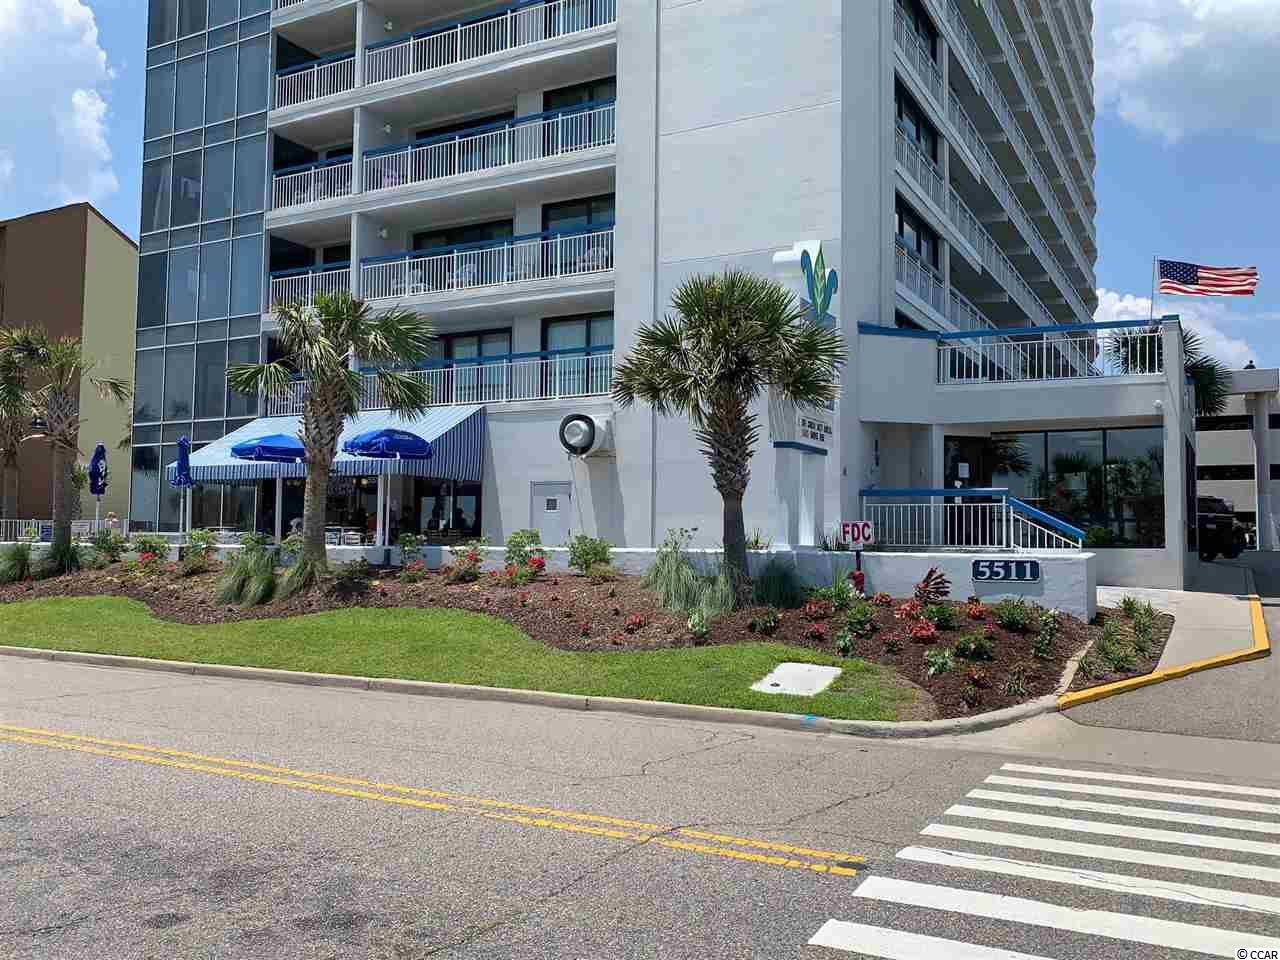 Great opportunity to own a large 1 bedroom 1.5 bathroom condo in the popular Forest Dunes Resort located on the famous Golden Mile of Myrtle Beach with many upgrades and onsite rental options. This unit is completely furnished and  features upgraded flat screen TV's, granite countertops, tile backsplash and a new sleeper sofa. Enjoy the large full size kitchen that  offers plenty of cabinets, counter space, breakfast bar and a smooth top range. Enjoy the spacious living/dining room area with sliding glass doors that open to your private balcony. The full bath has a vanity and tub/shower combination. There is plenty of sleeping space in this one bedroom condo with two double beds and a sleeper sofa. There is an owner's closet for private storage. Enjoy awesome ocean views from your balcony, living room and bedroom. . Forest Dunes offers you and your guest great amenities such as an indoor/ outdoor pools, lazy river ride, hot tub, exercise room and on-site washers and dryers.  Come and relax in the on site in door/ out door restaurant and sports bar. Location close to shopping, golf , dining, entertainment and everything the Grand Strand has to offer. If you are looking  a vacation getaway or investment property this is a must see!